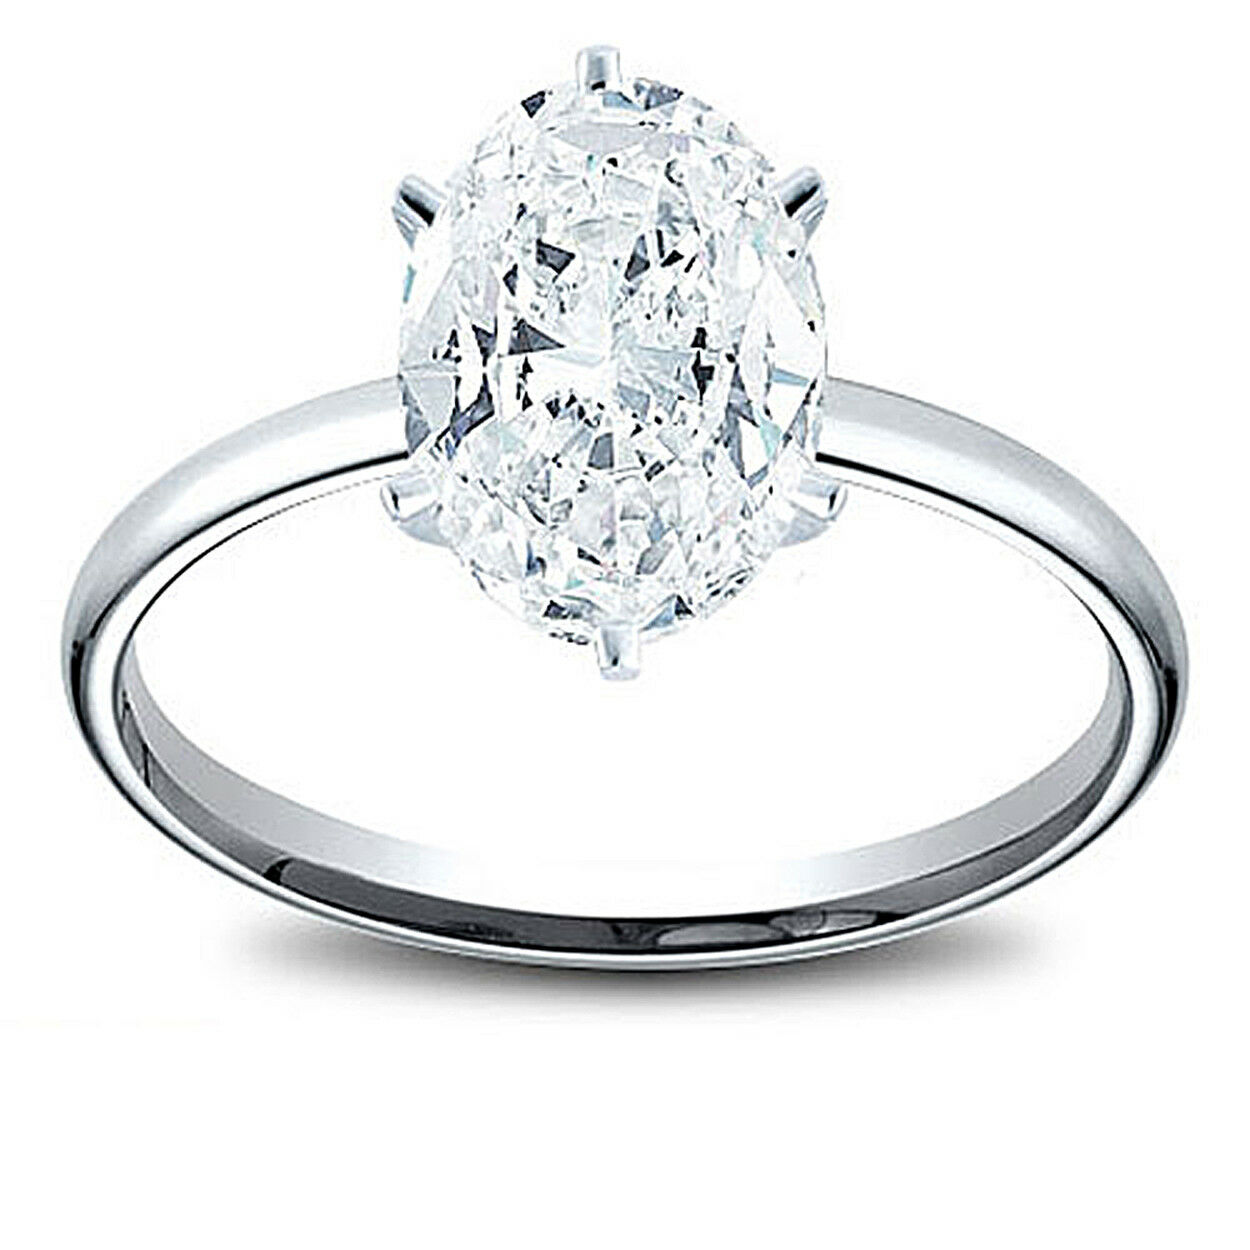 14K Gold 0.72 ct Oval Cut Diamond GIA Solitaire Engagement Ring E VS1